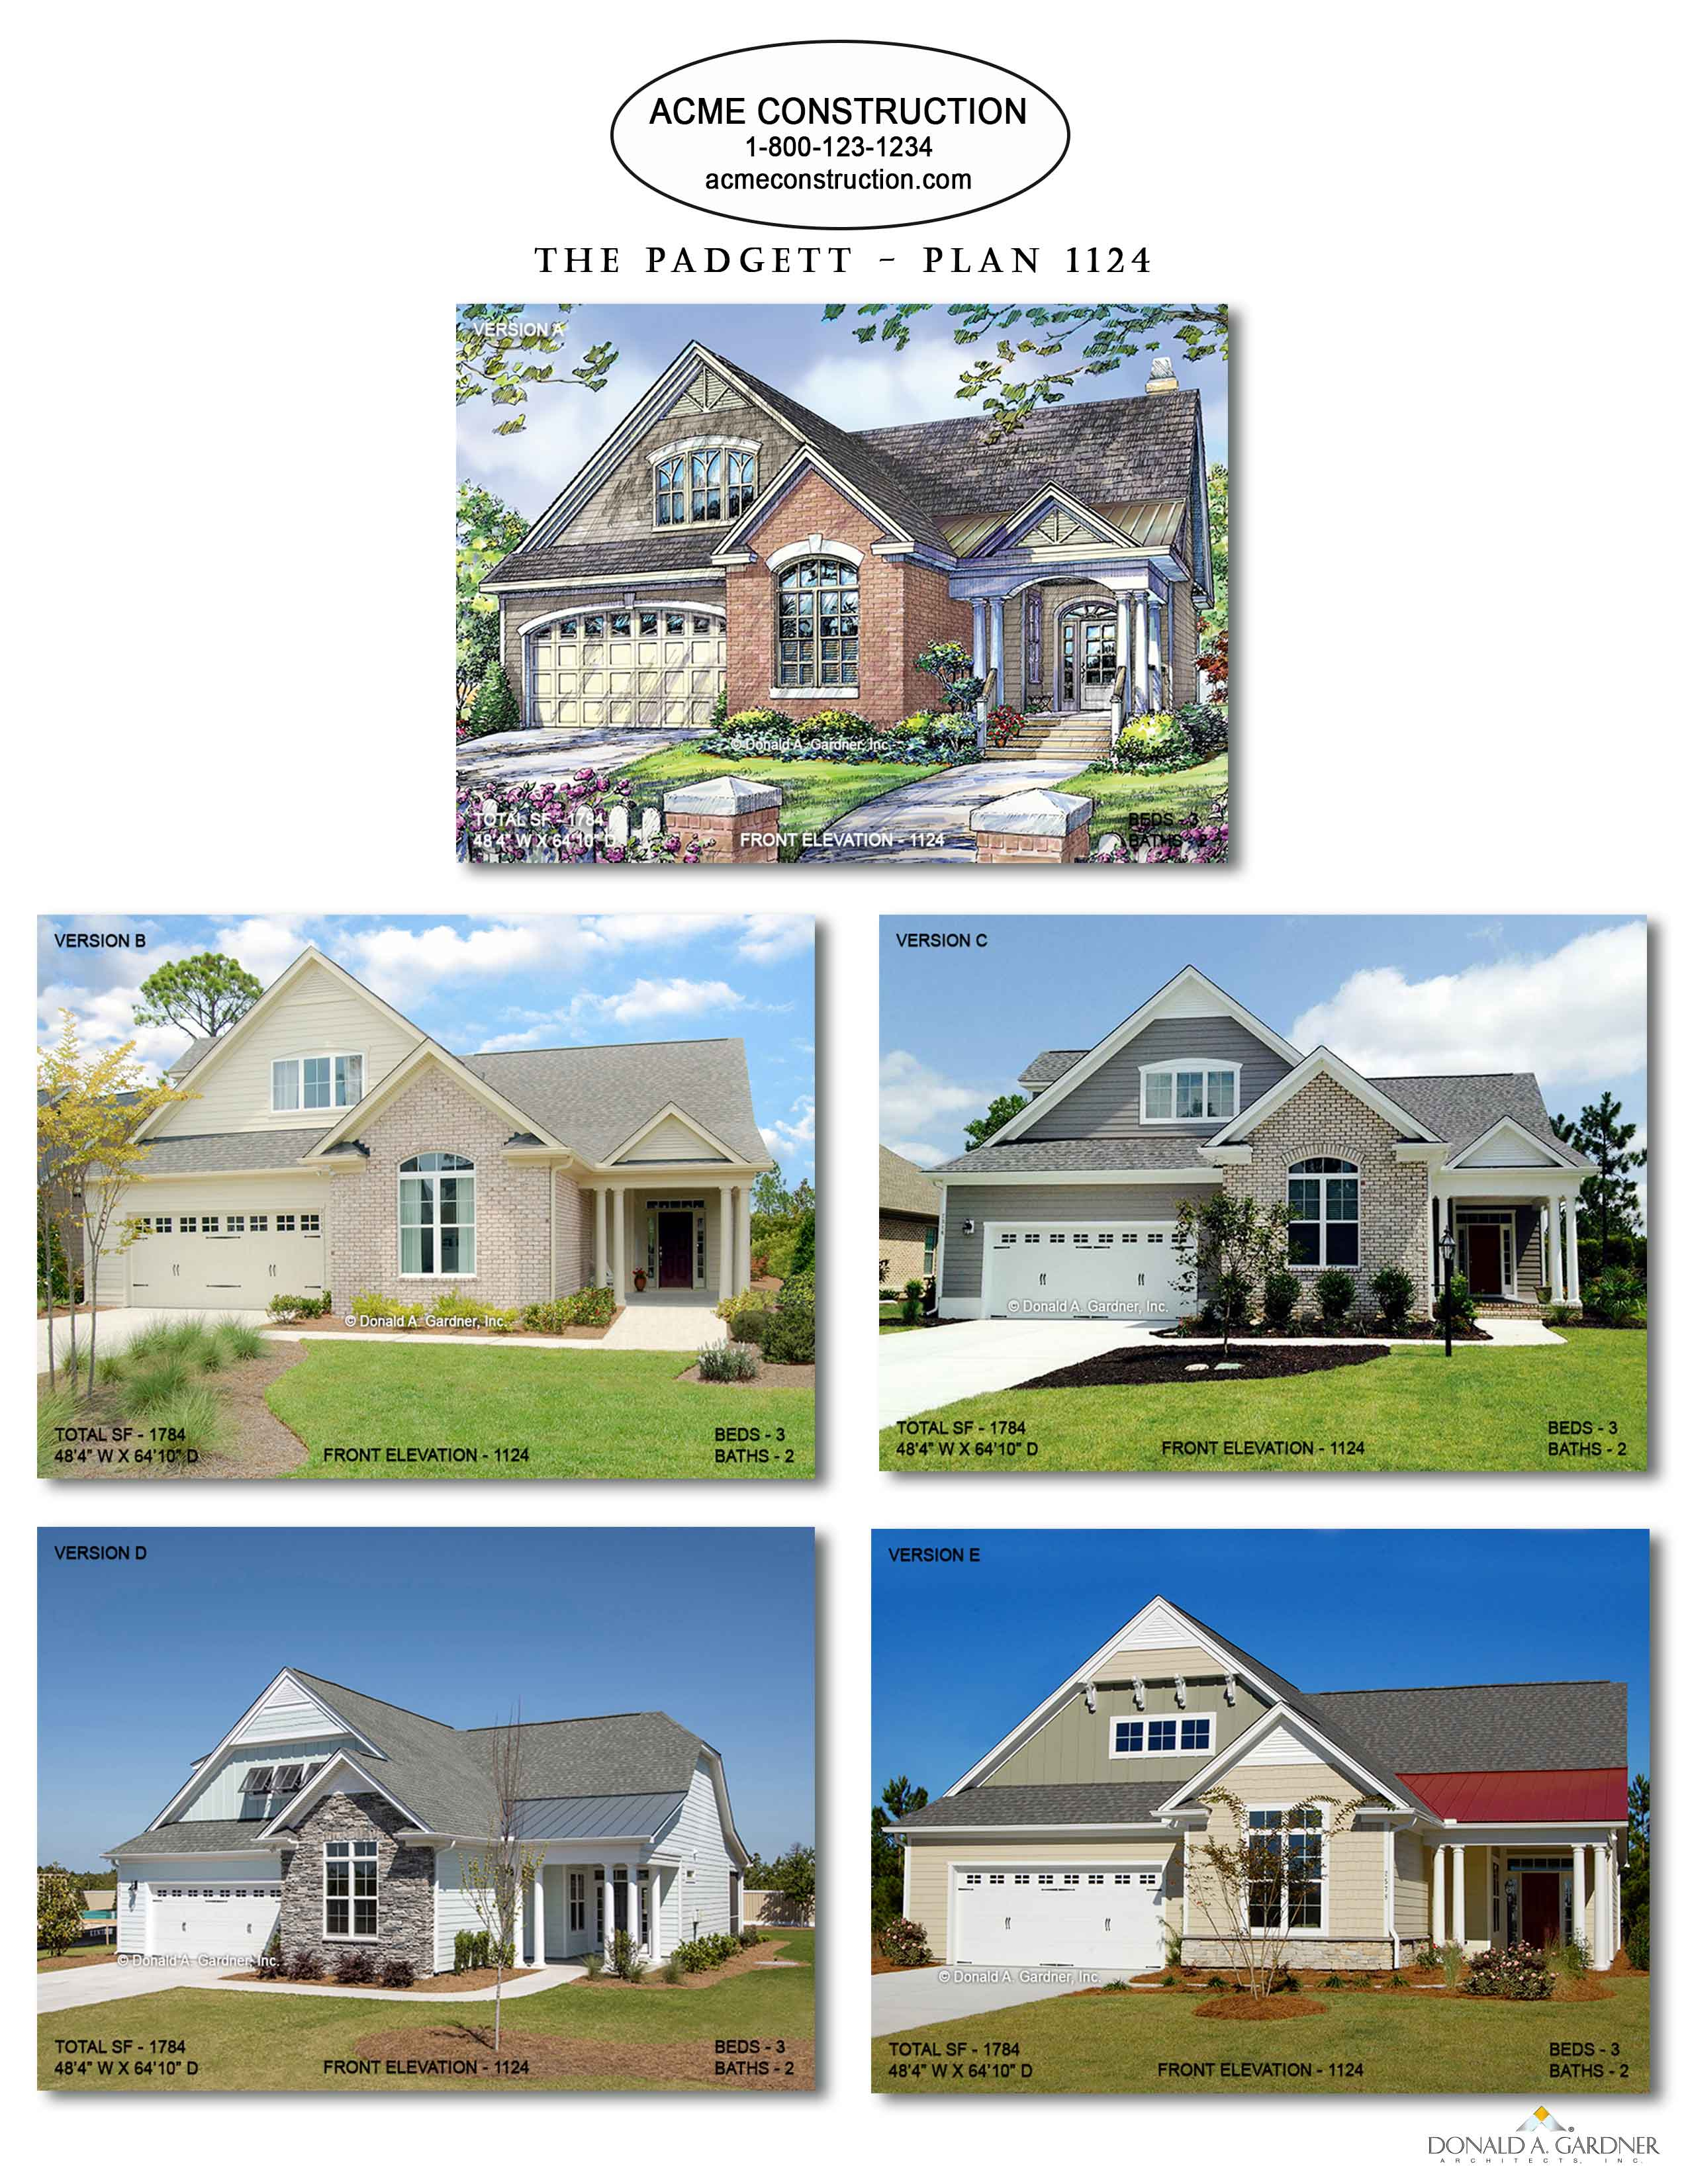 House Plan 1124 - The Padgett